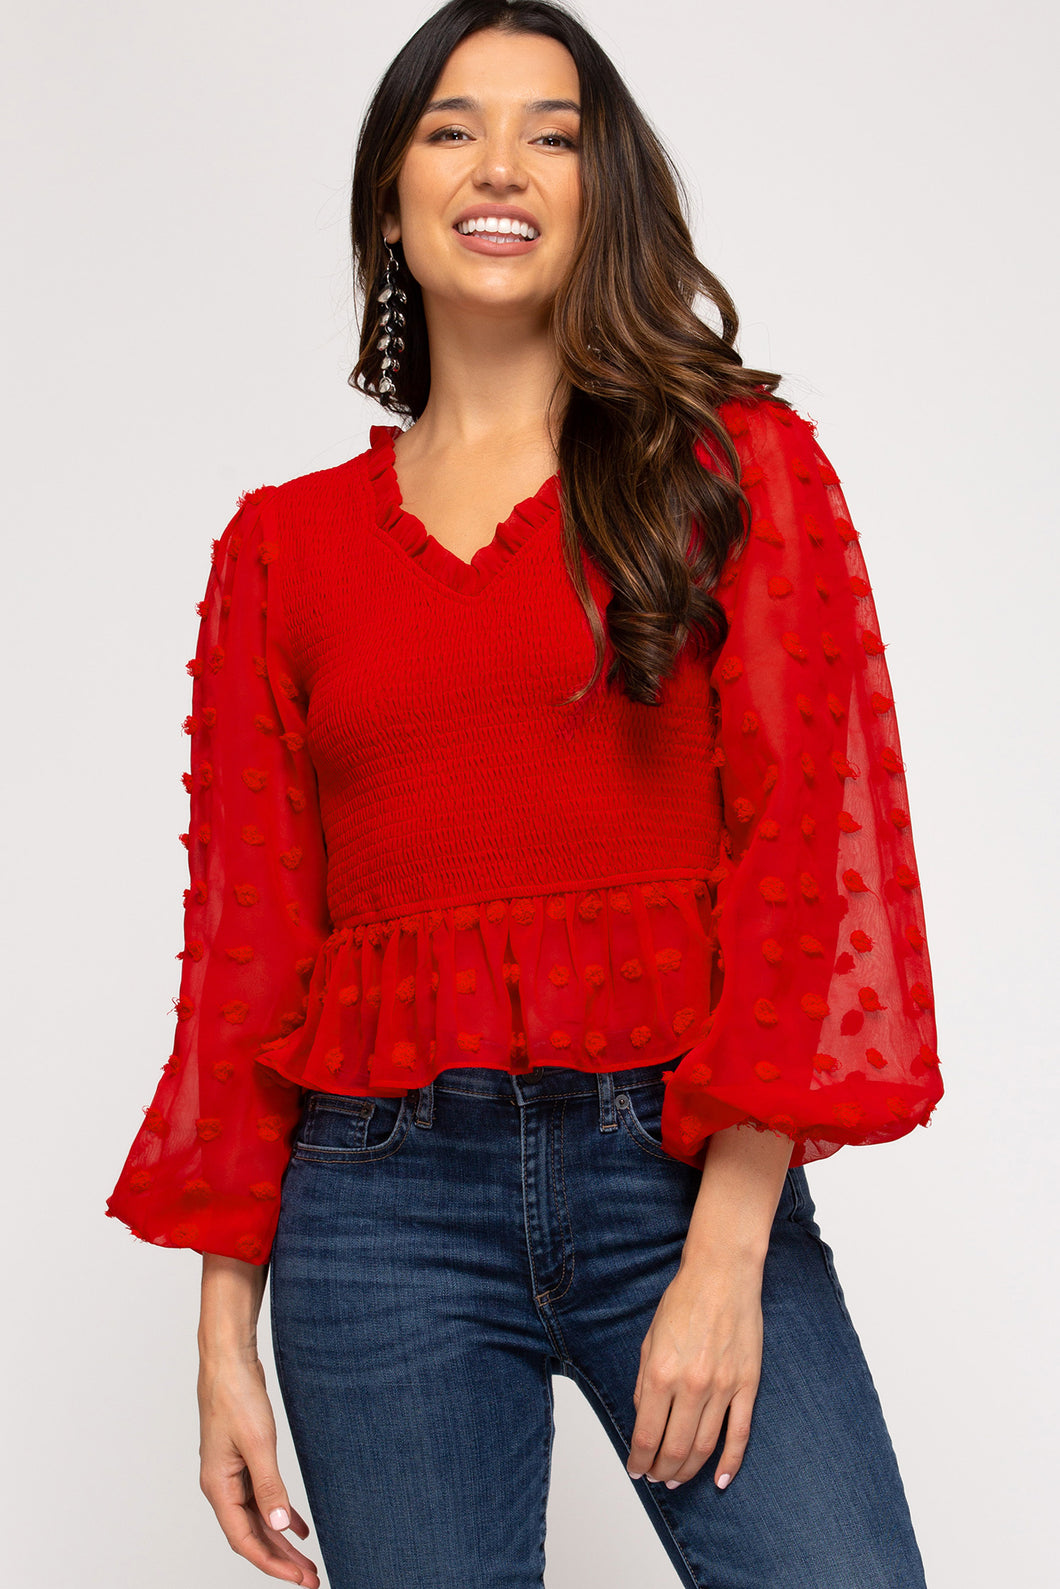 Be My Valentine Top - Red